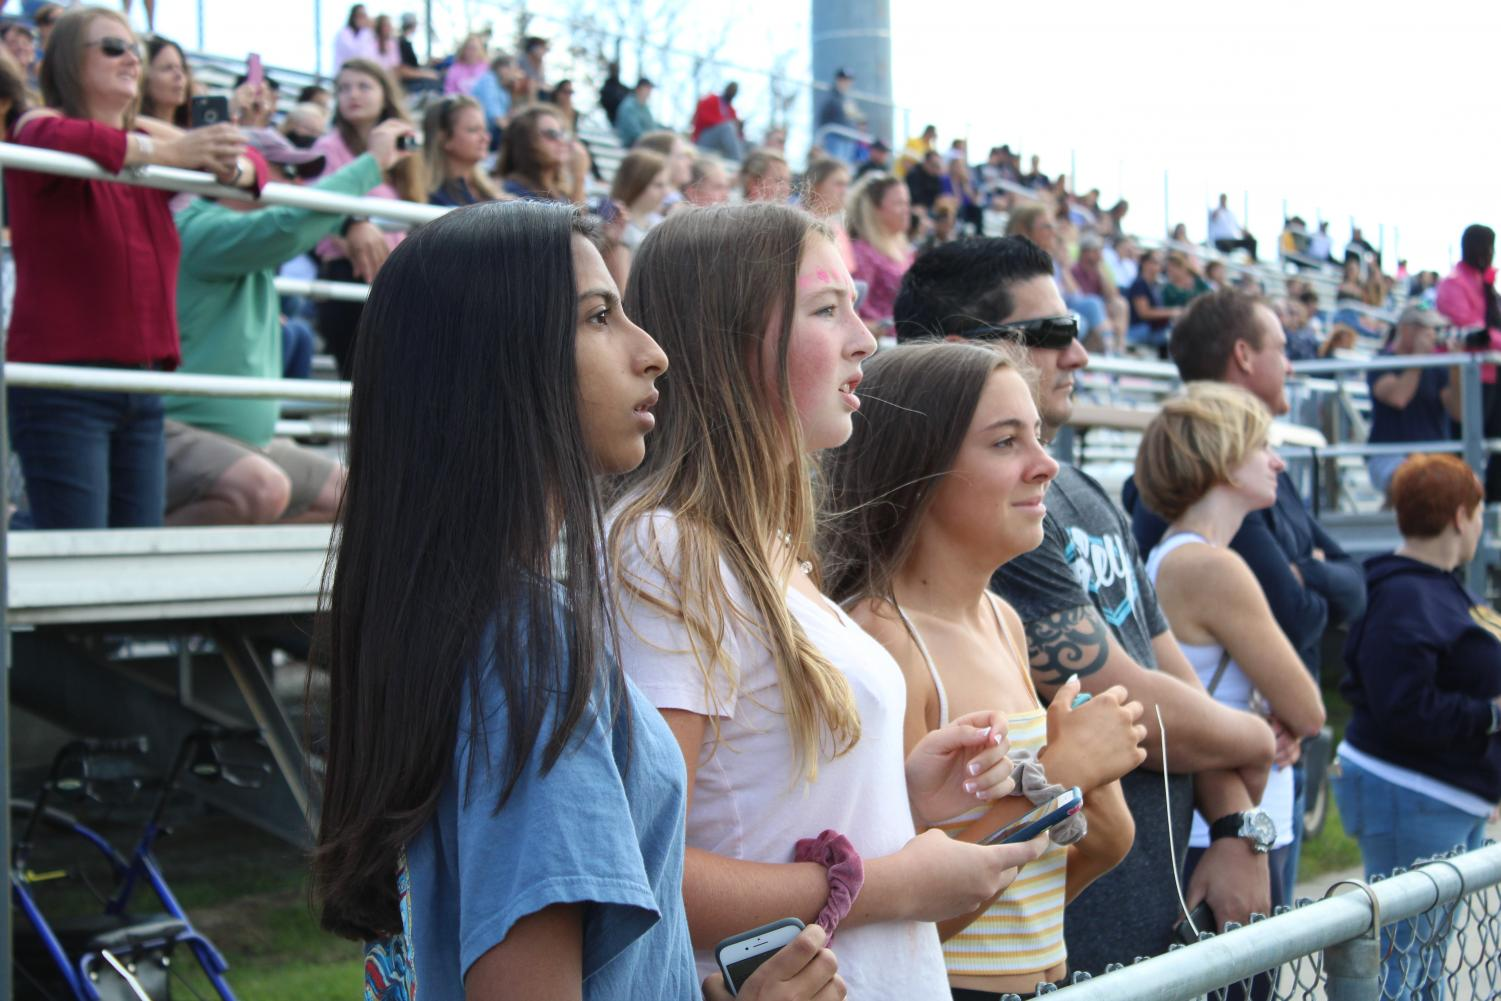 Sophomores (from left to right) Meher Mohann, Kristin Glasier, and Kelly McCarty attentively watch the Homecoming game on Oct. 13.